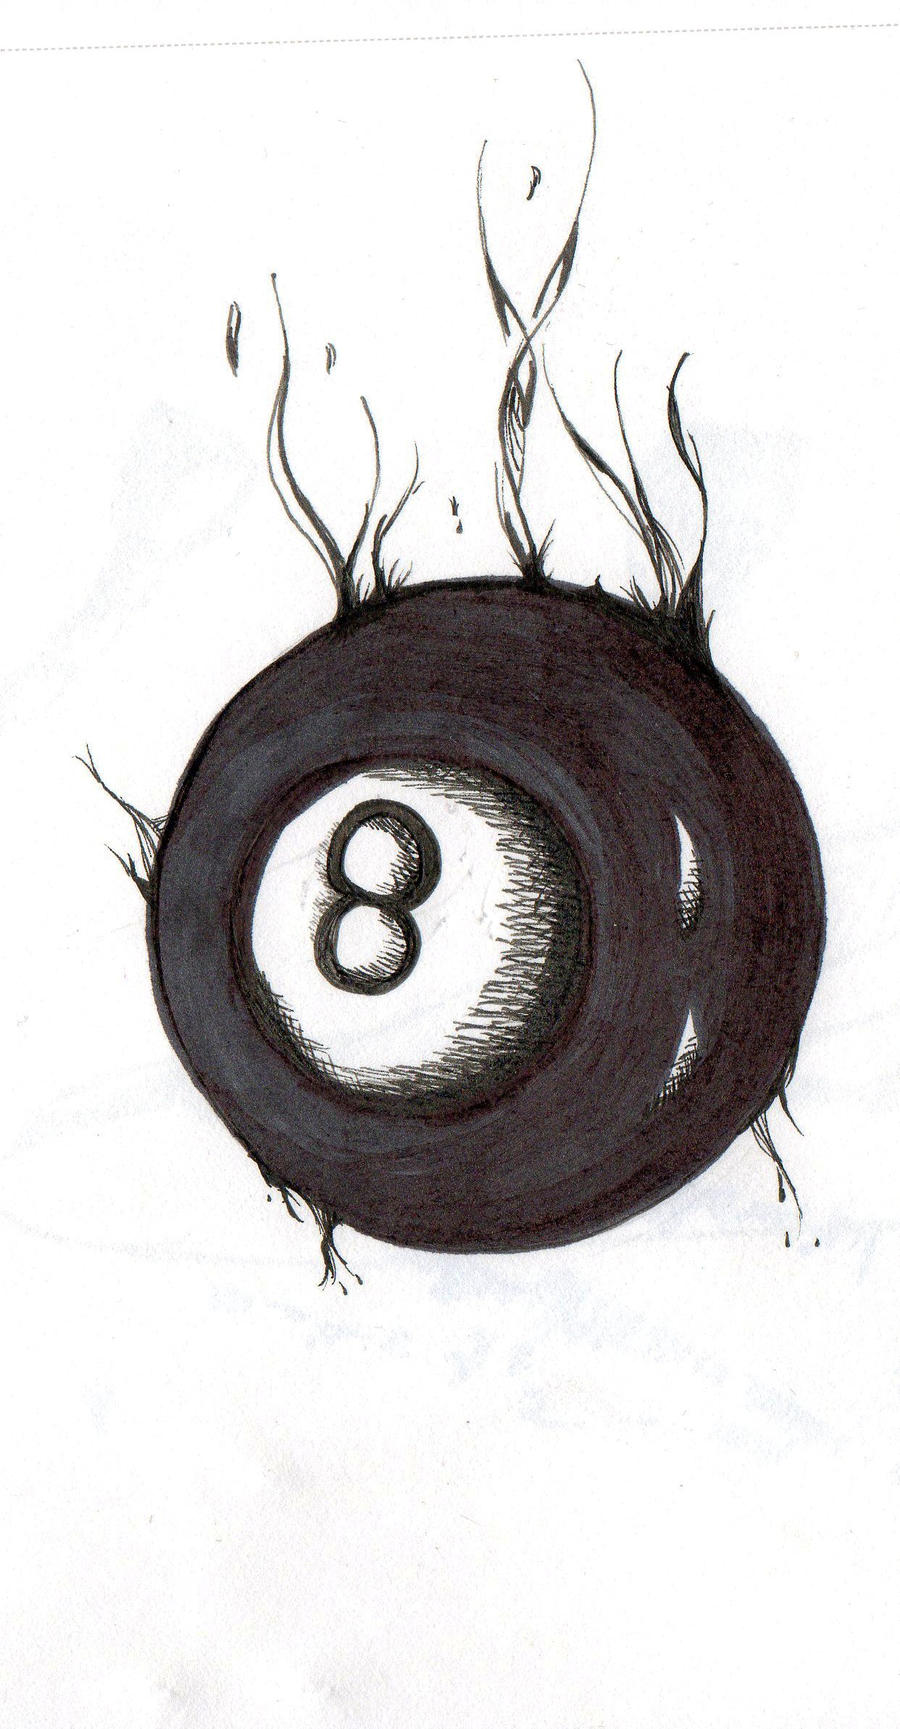 High quality 8 Ball Drawing inspired TShirts by independent artists and designers from around the world All orders are custom made and most ship worldwide within 24